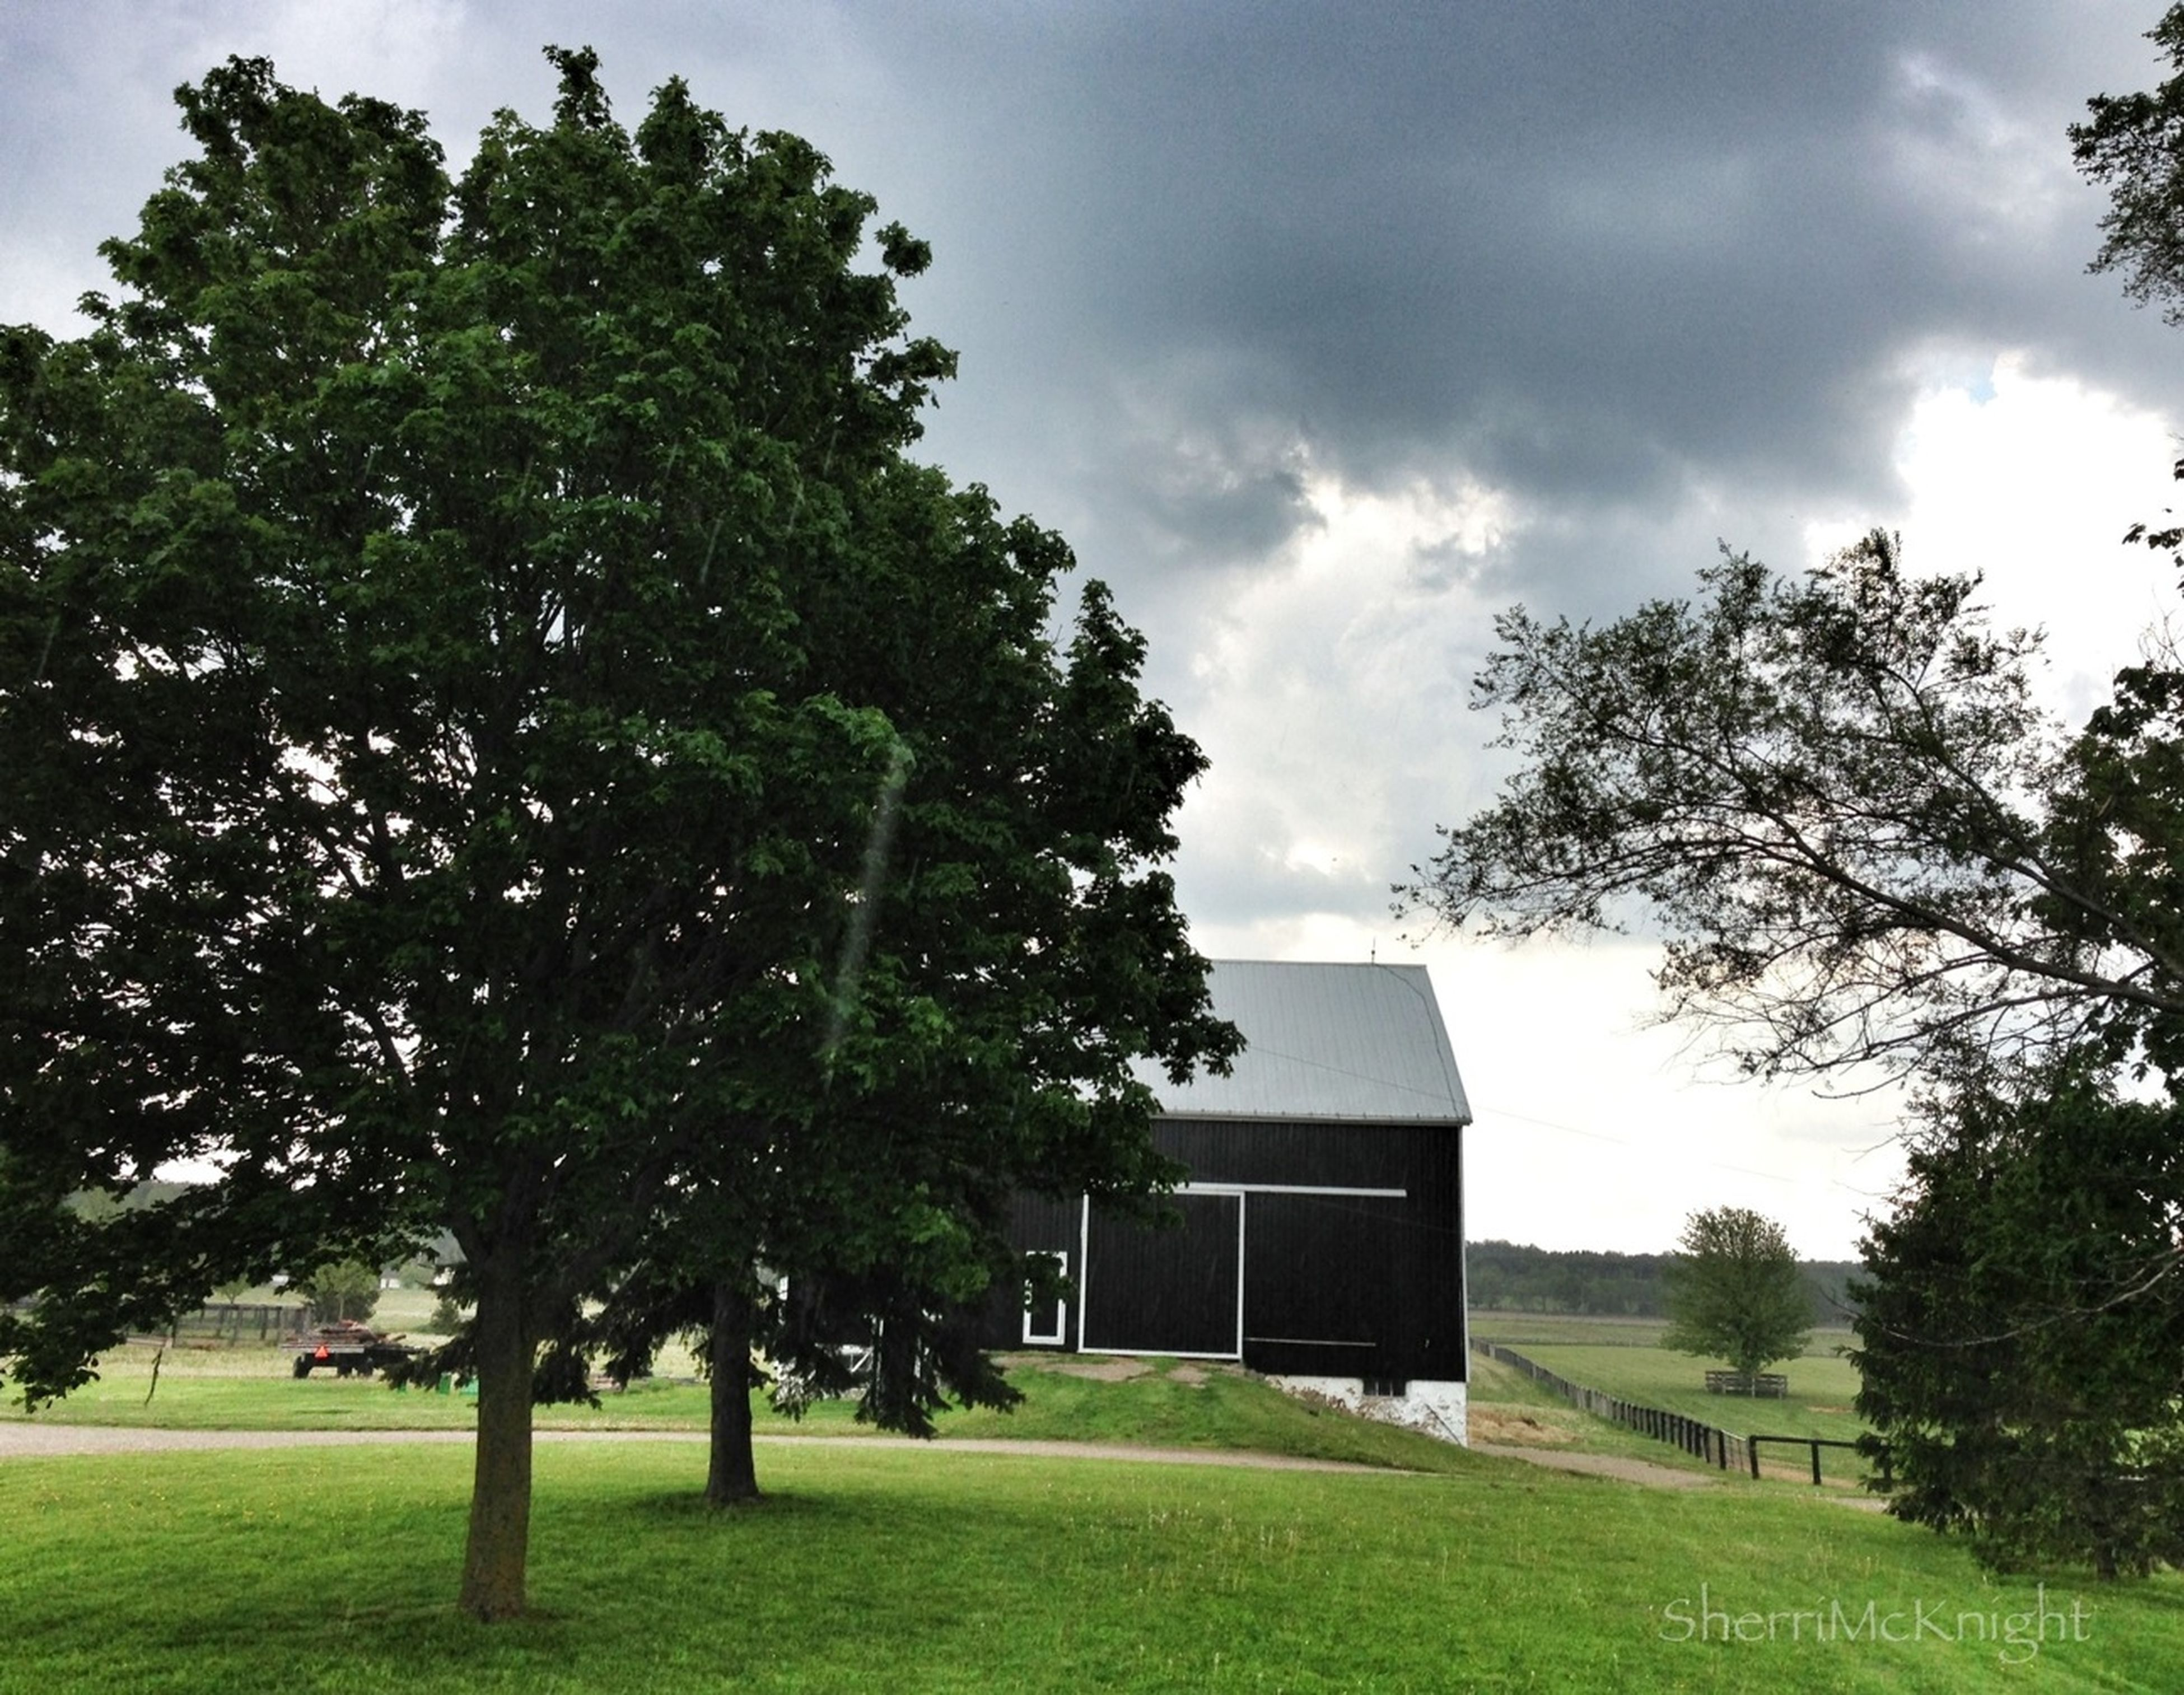 tree, grass, sky, building exterior, architecture, built structure, cloud - sky, green color, lawn, grassy, cloud, growth, field, house, cloudy, nature, park - man made space, tranquility, day, no people